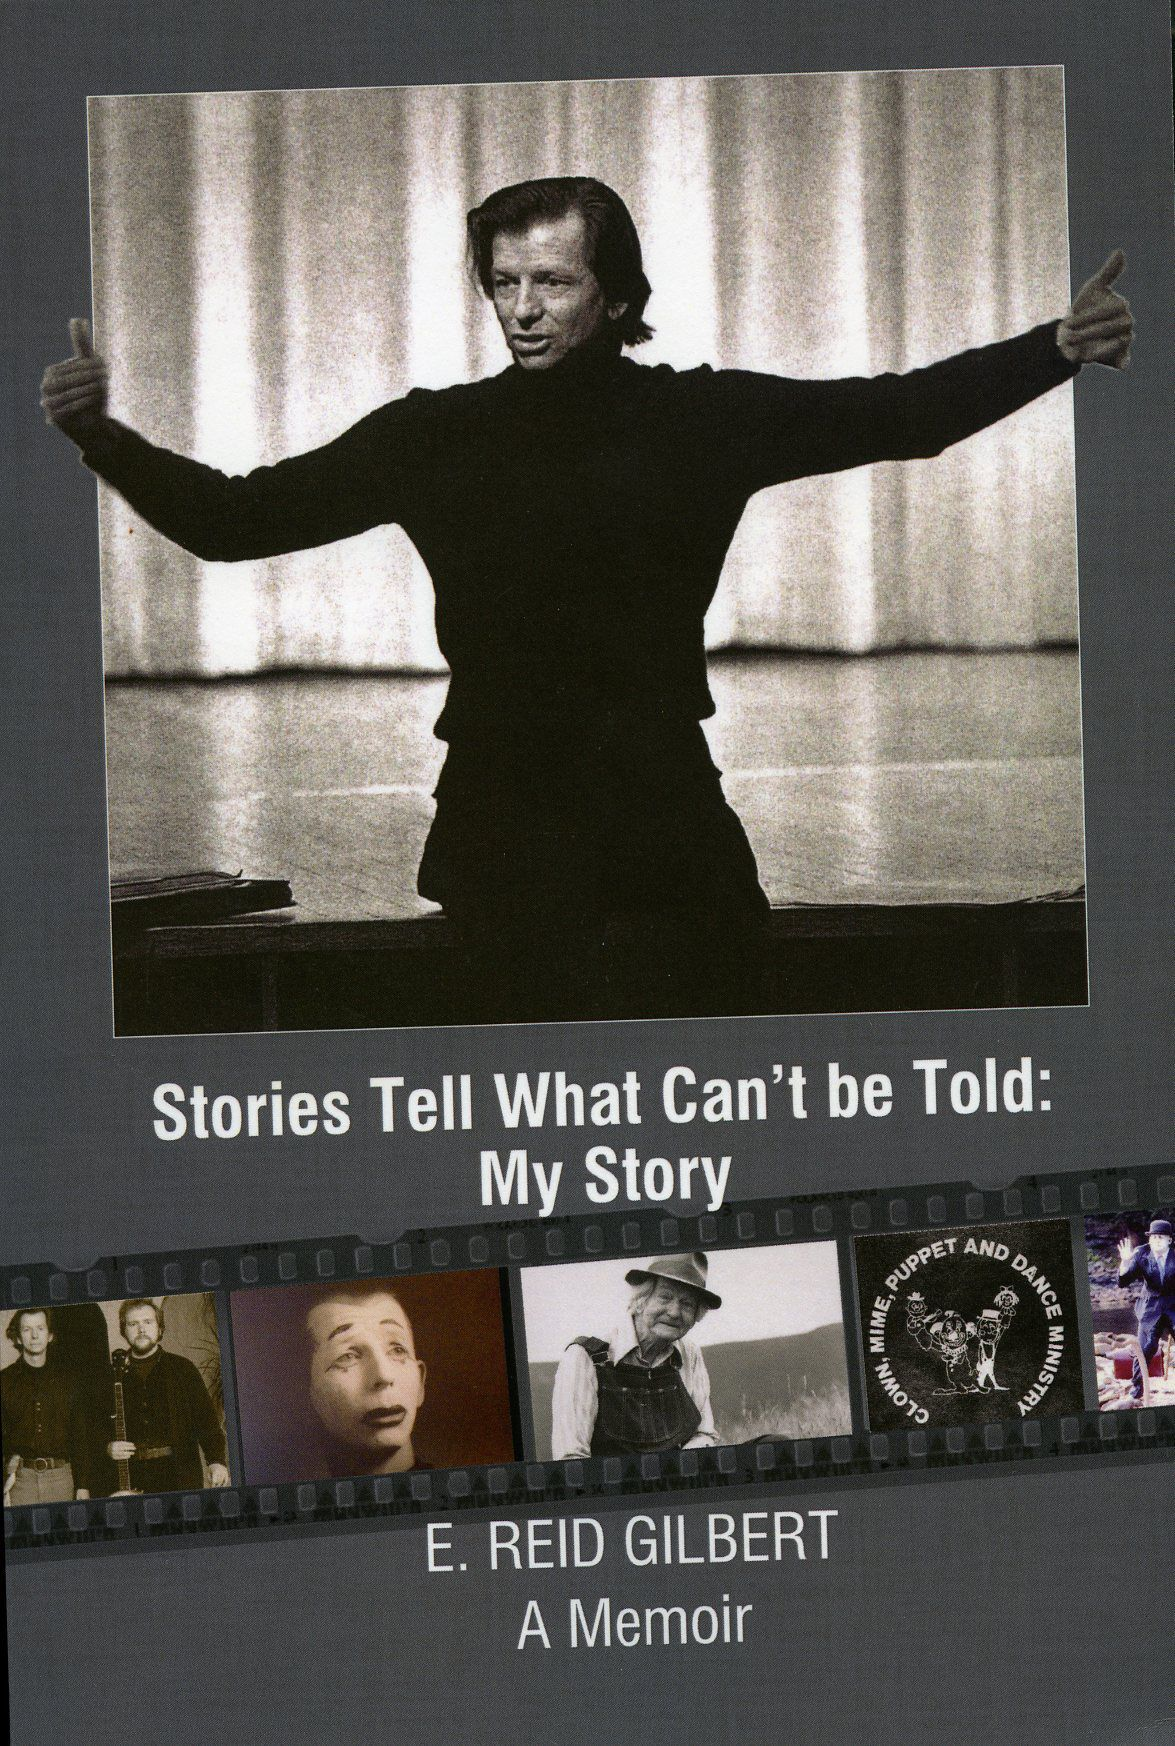 Stories Tell What Can't Be Told: My Story